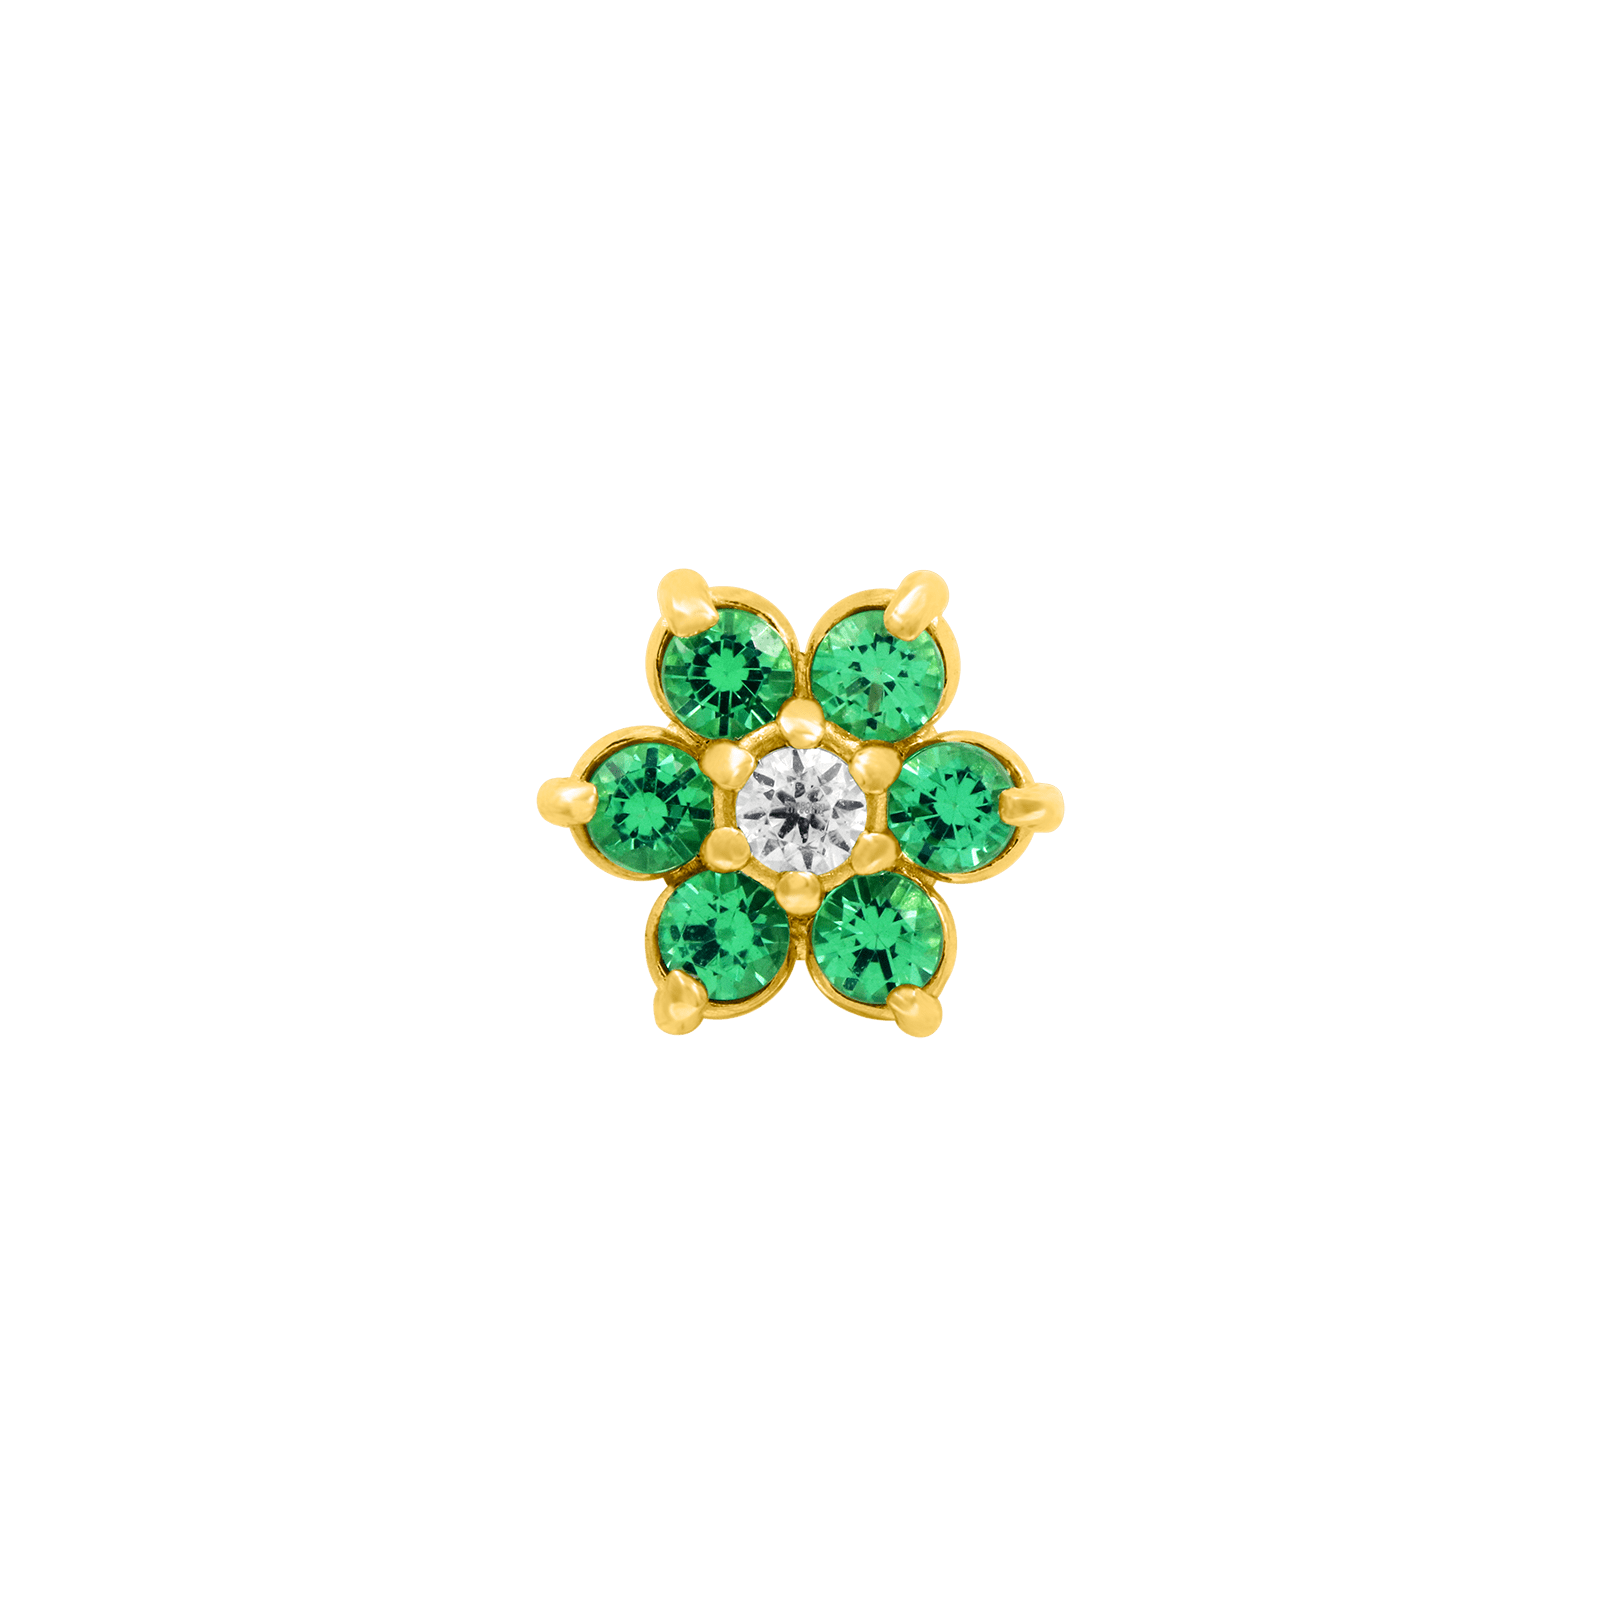 Flower Emerald CZ End in 18k Yellow Gold by Anatometal - Pierced